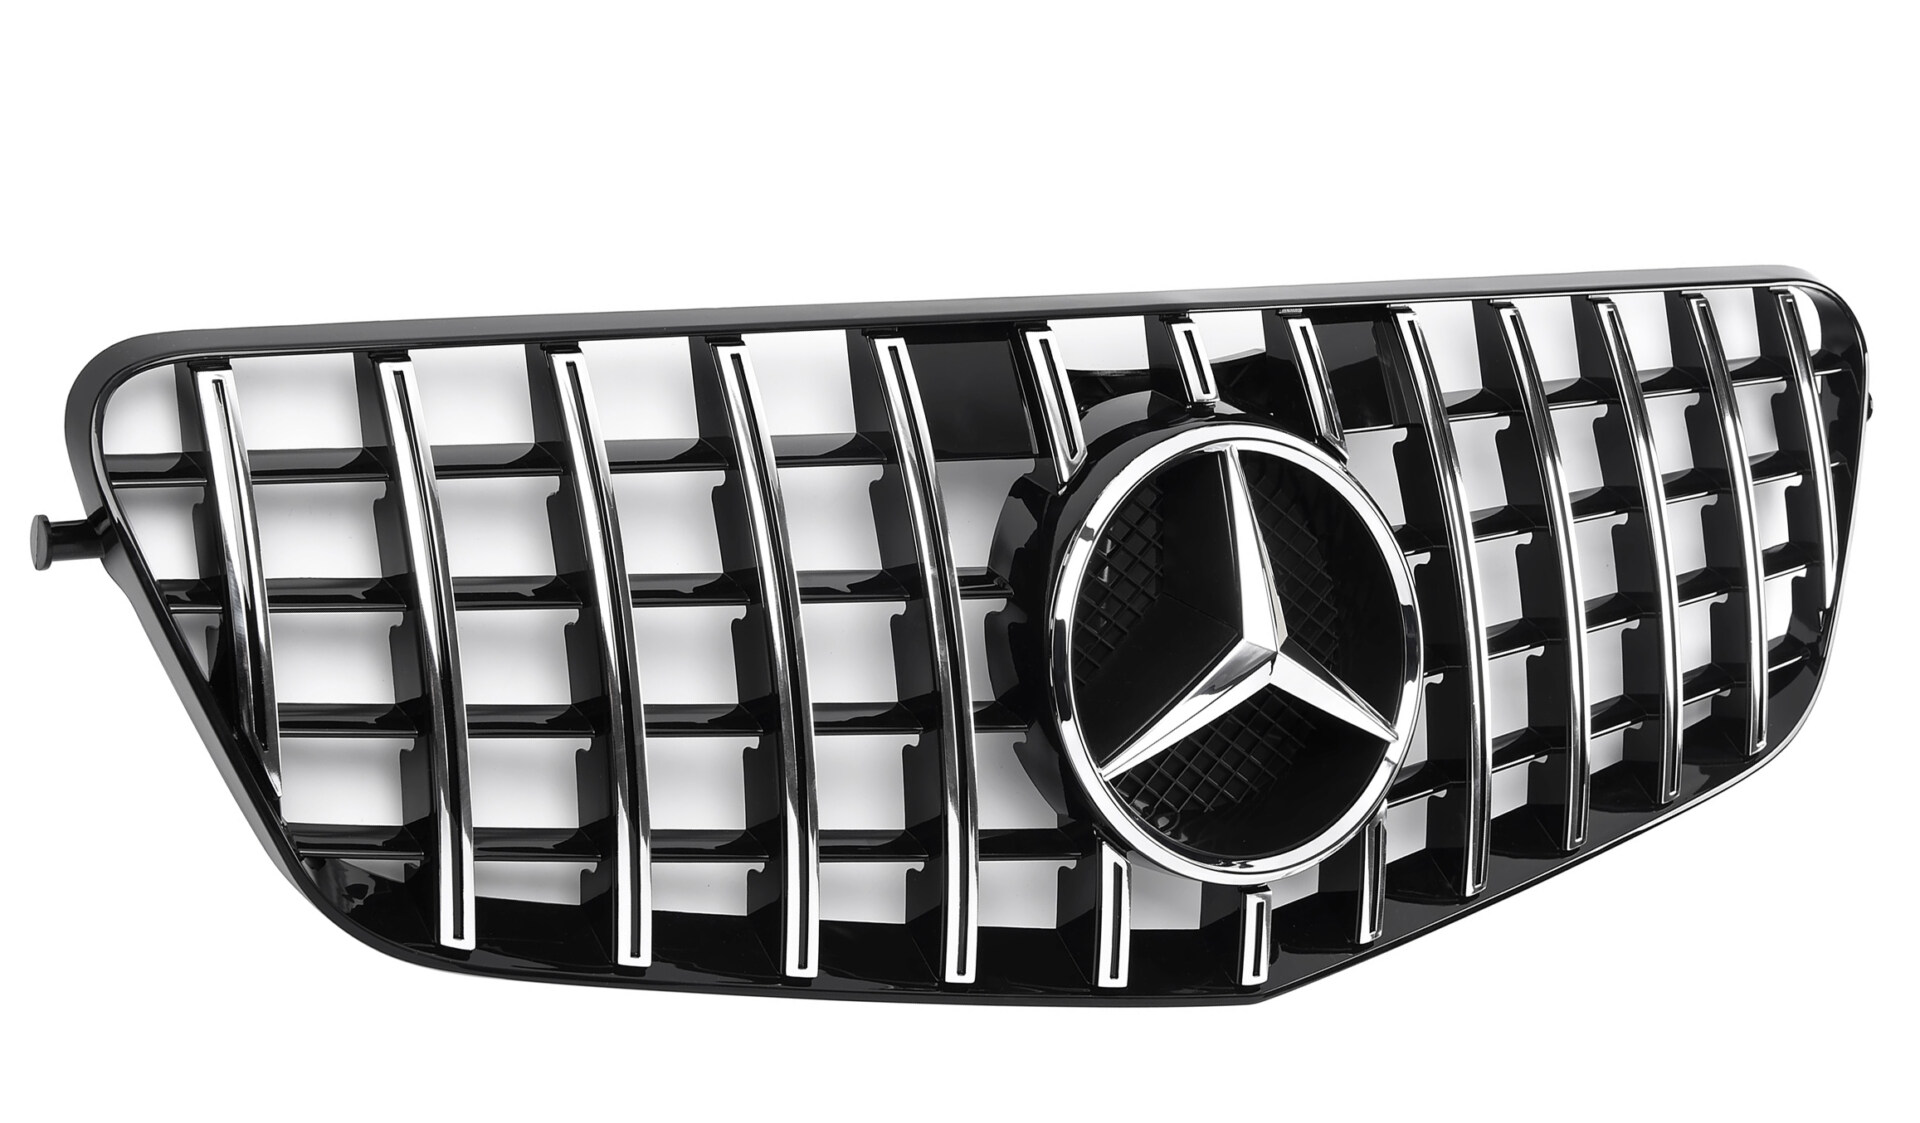 Grille sport Mercedes Benz W212 chrome panamericana look